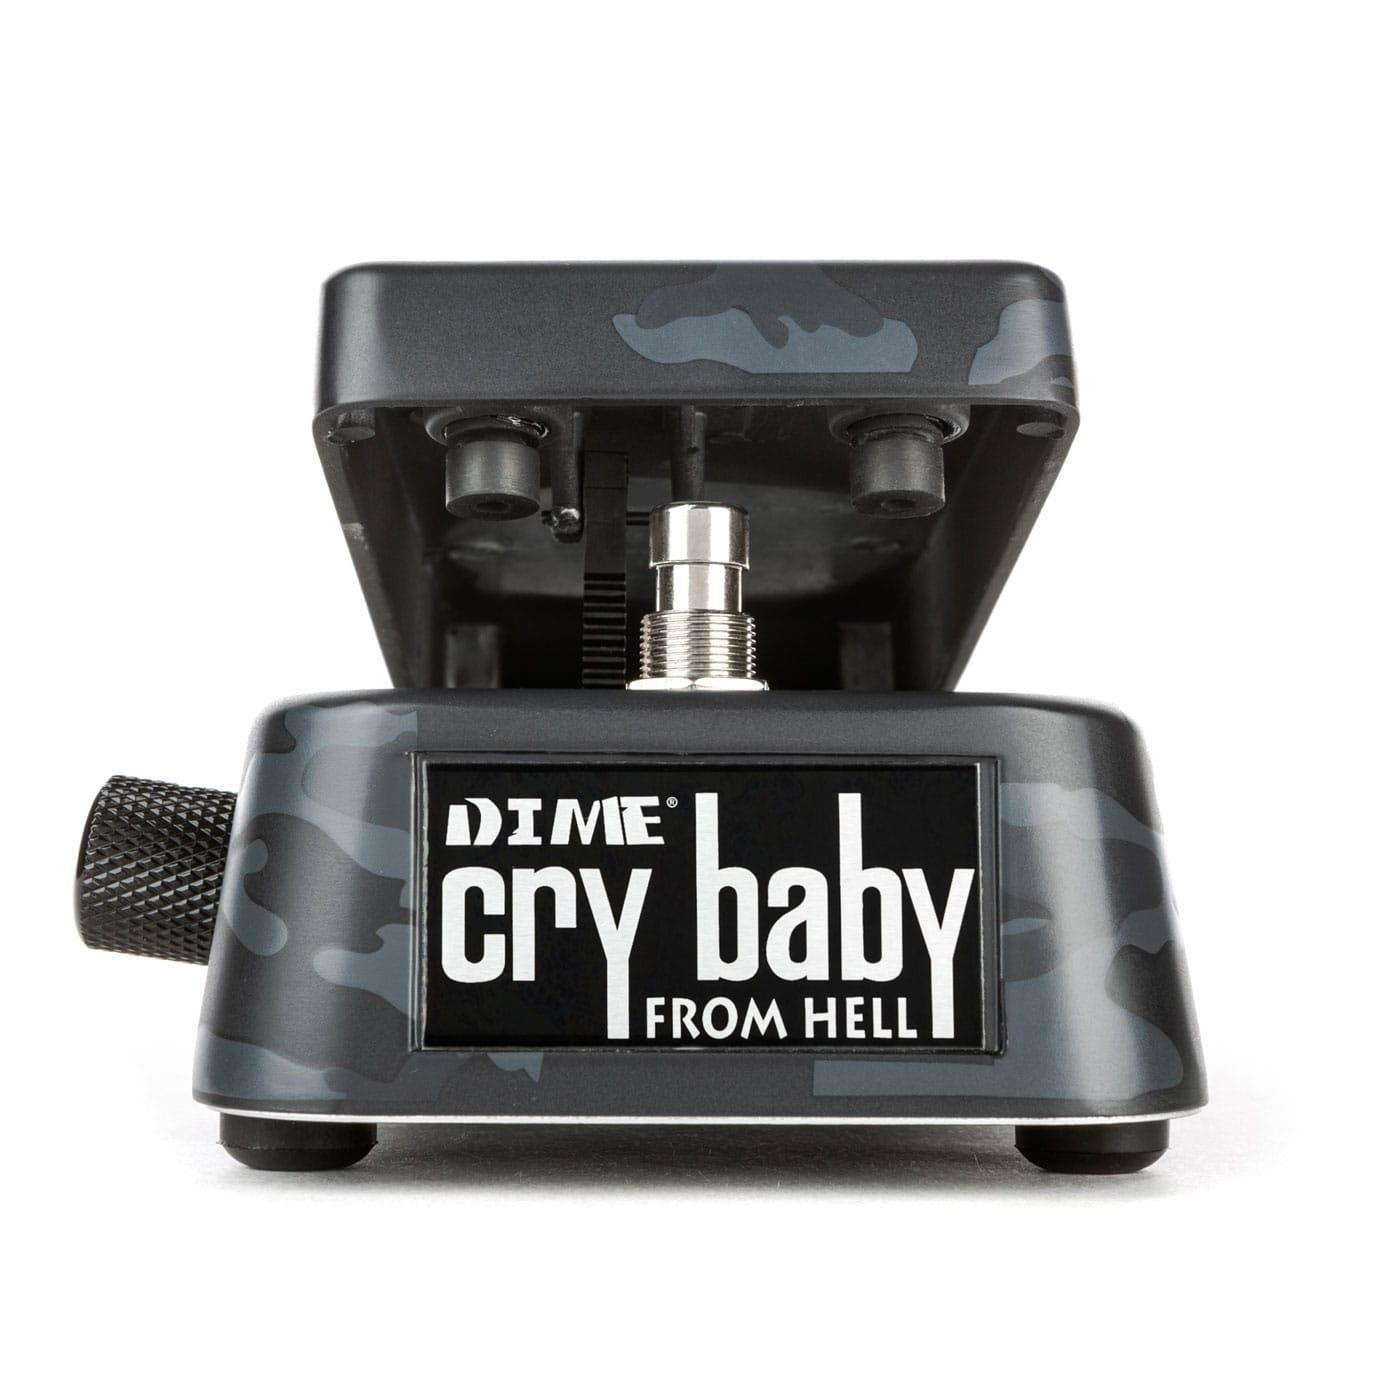 Dunlop DB01 Signature Dimebag Crybaby From Hell Wah - black camo